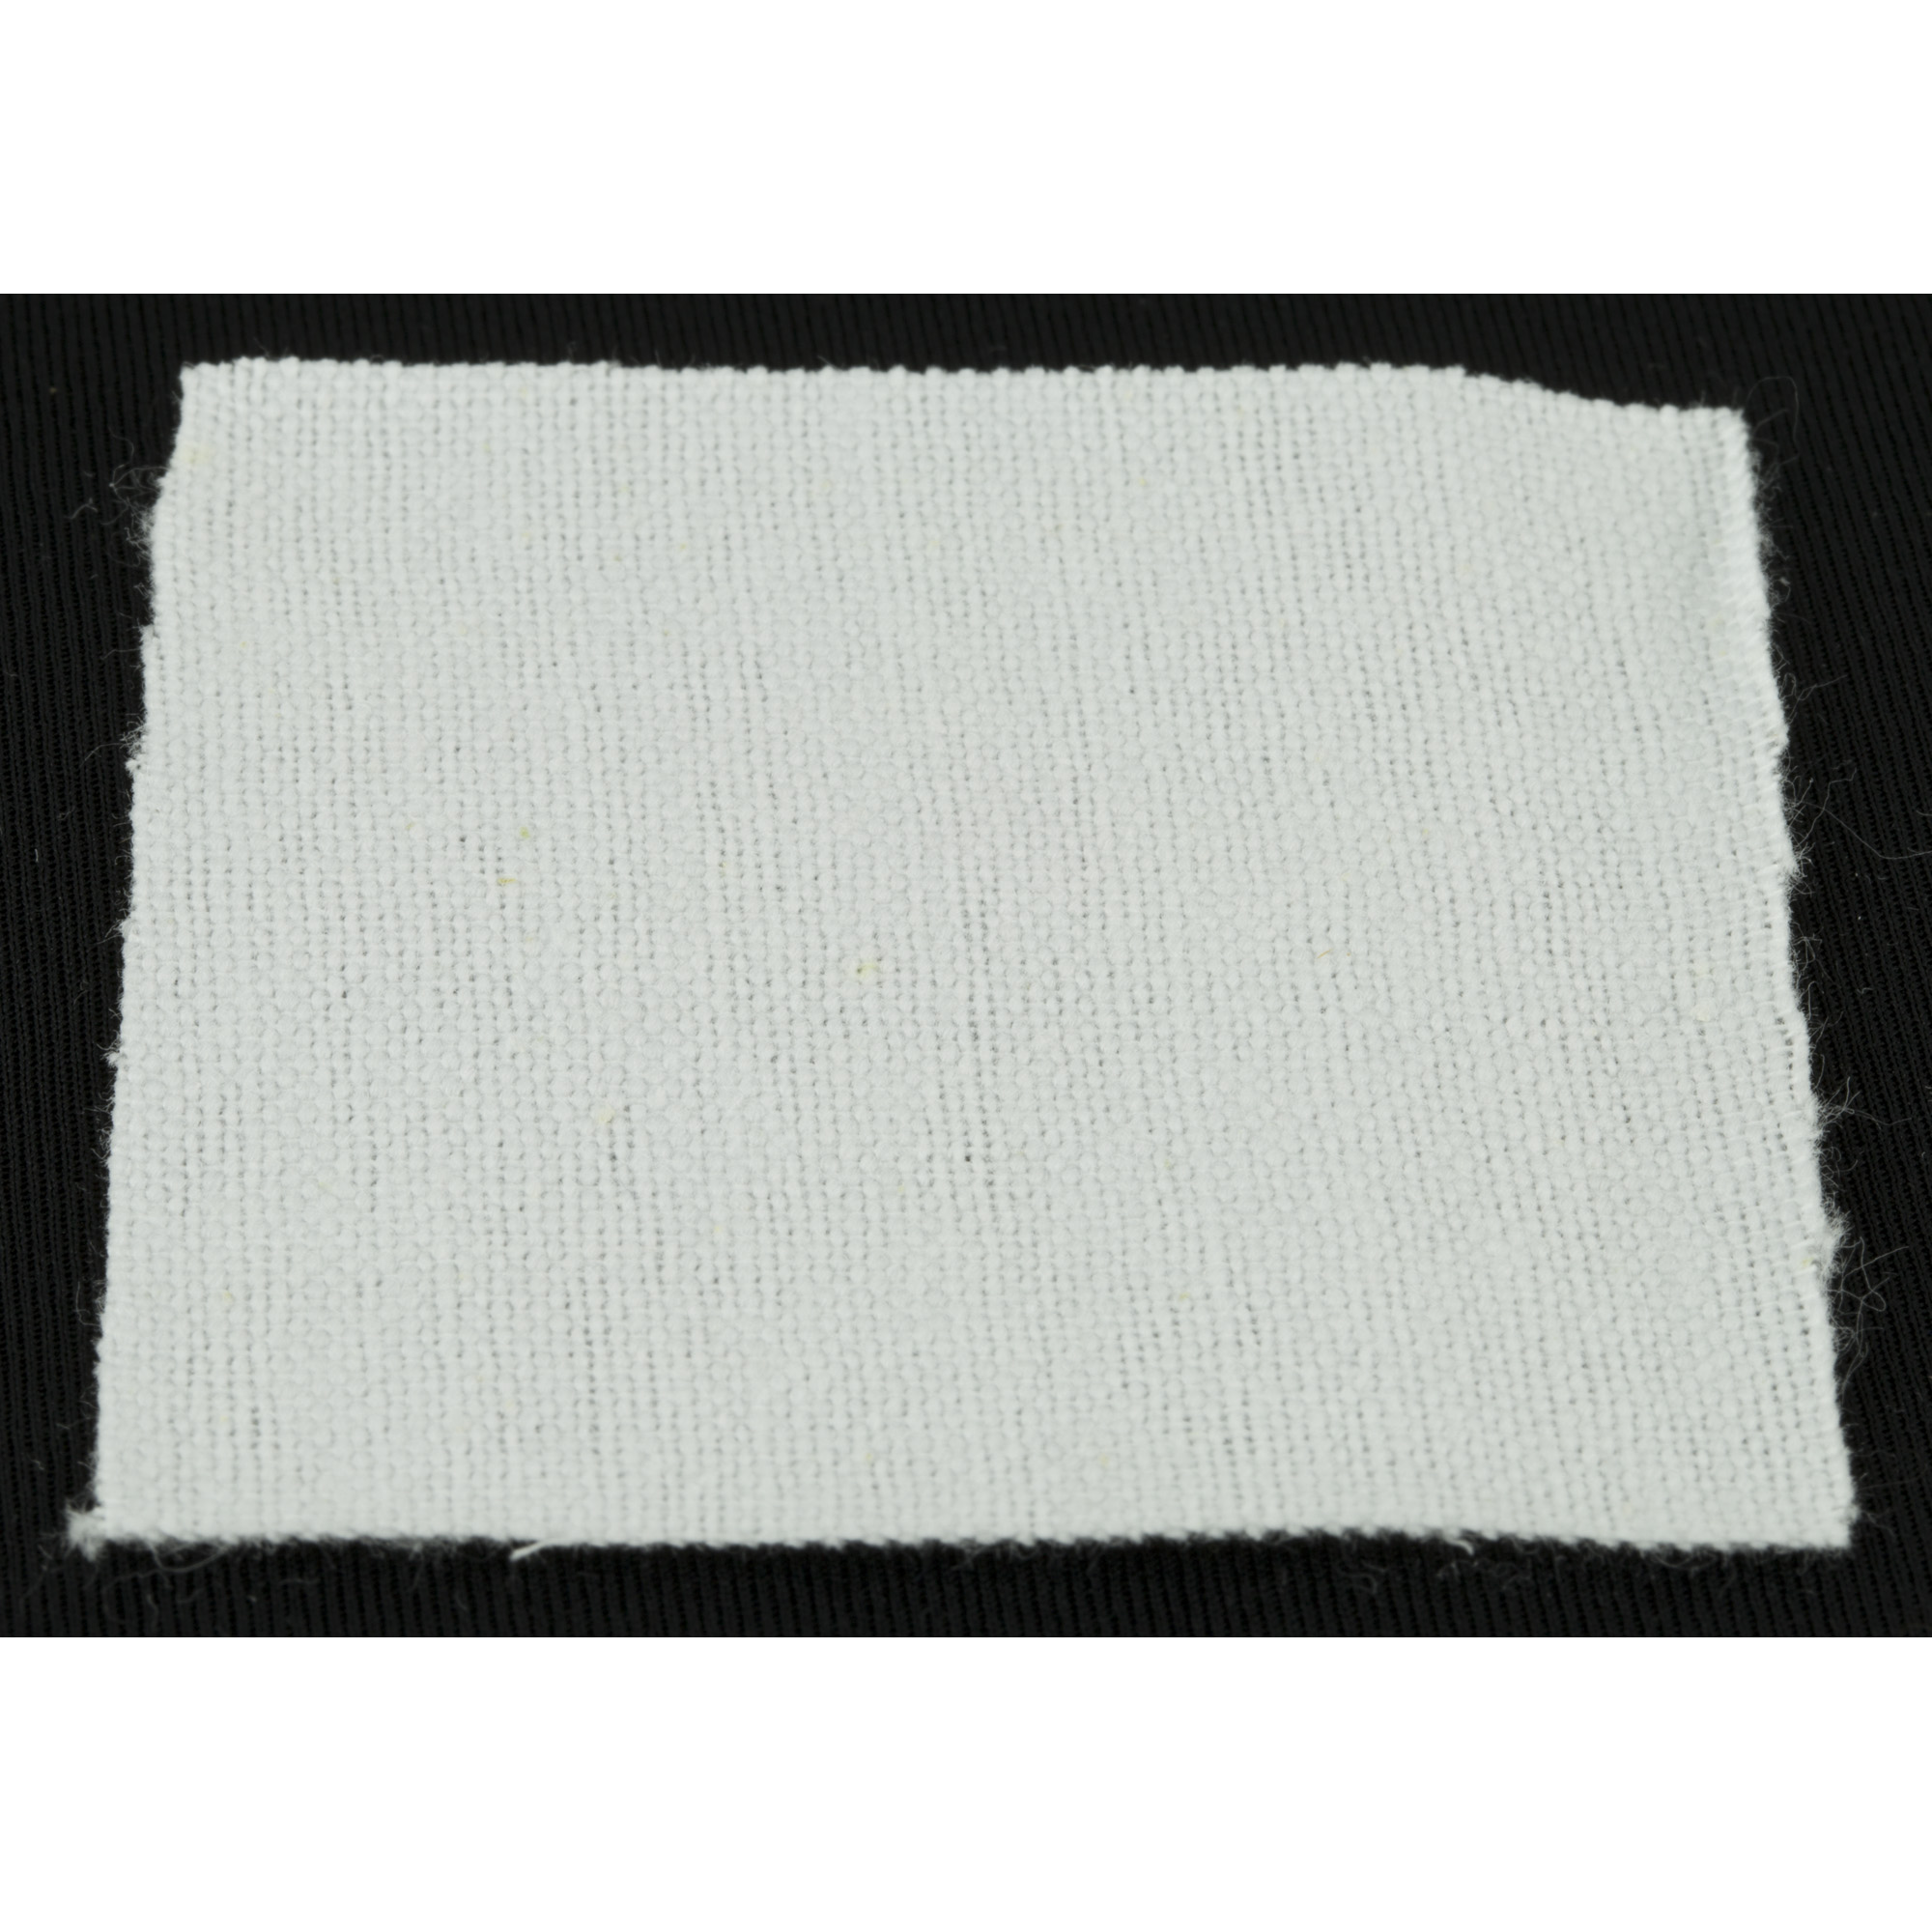 """This patches are 100% cotton flannel"""" bulk-packaged for high volume users such as competition shooters"""" gun clubs"""" law enforcement agencies"""" gunsmiths"""" and others."""